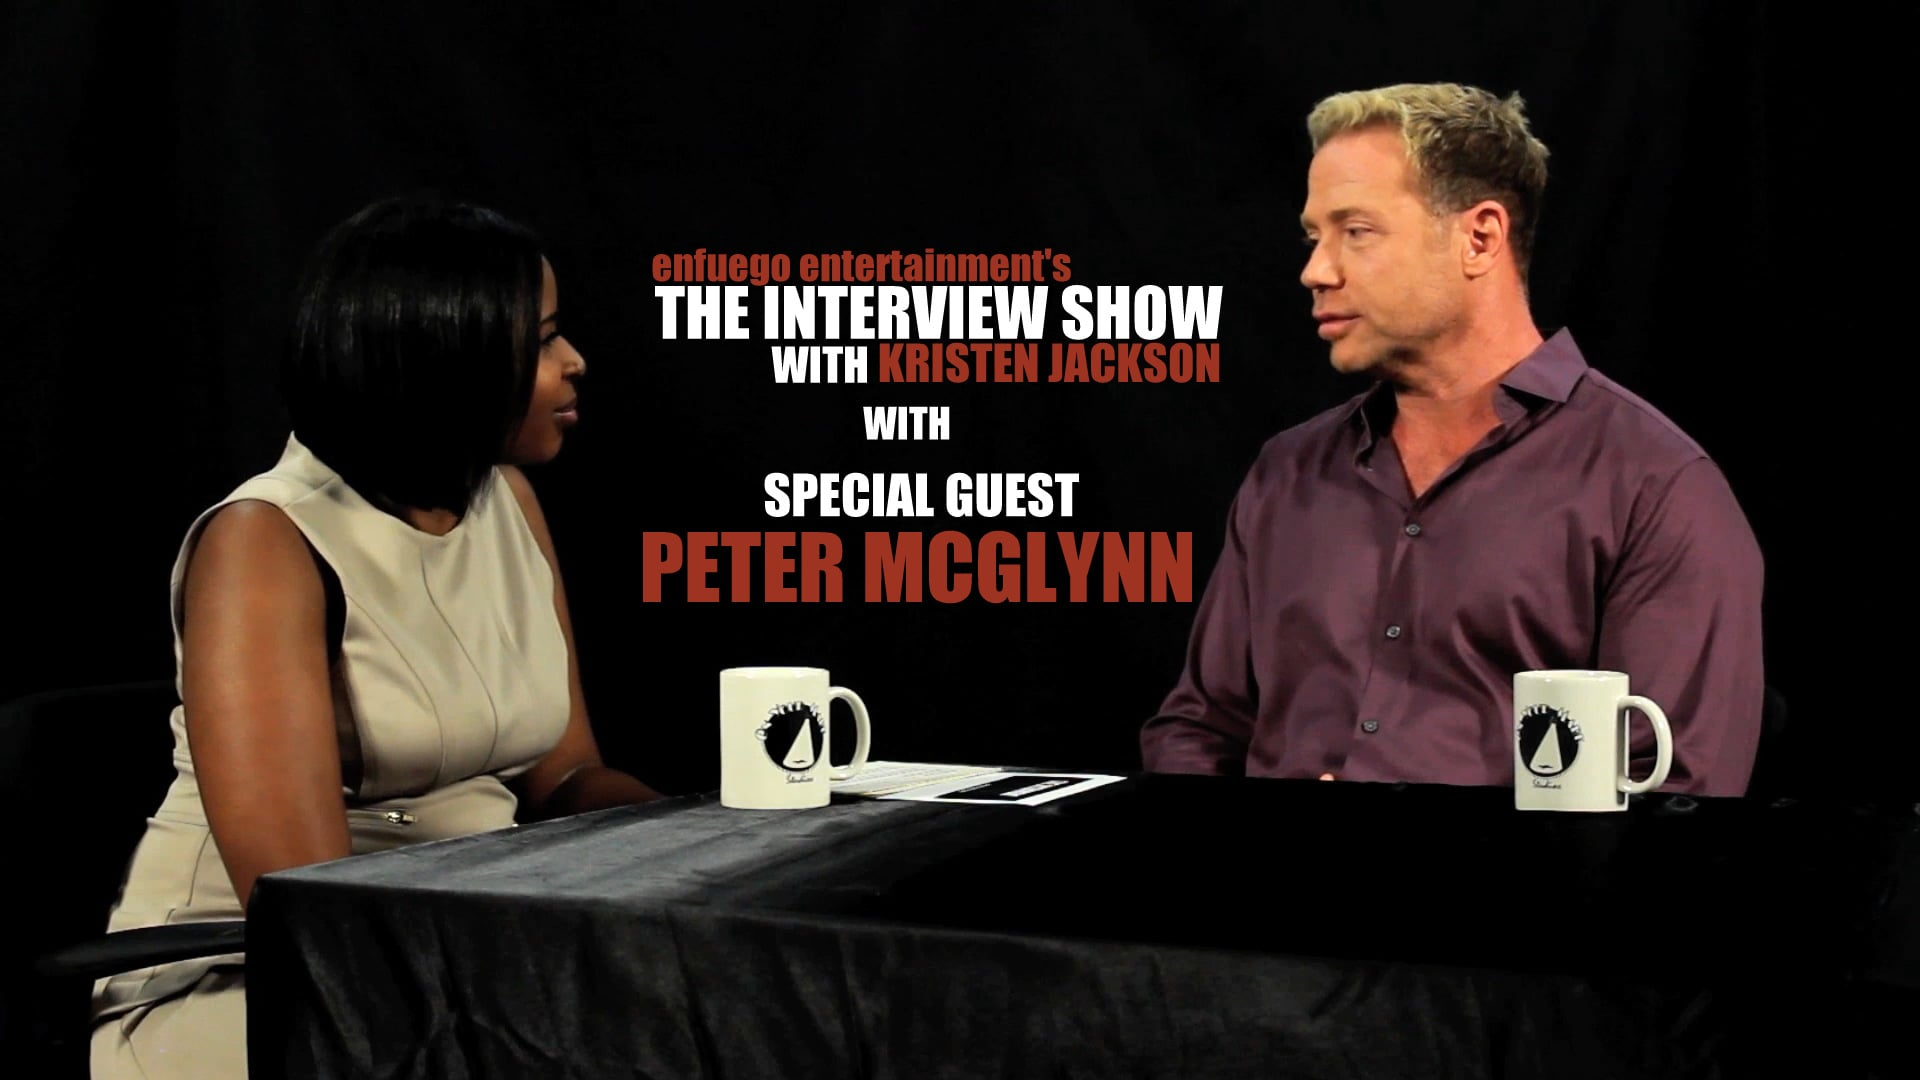 The Interview Show with Kristen Jackson 1.1 (Peter McGlynn)